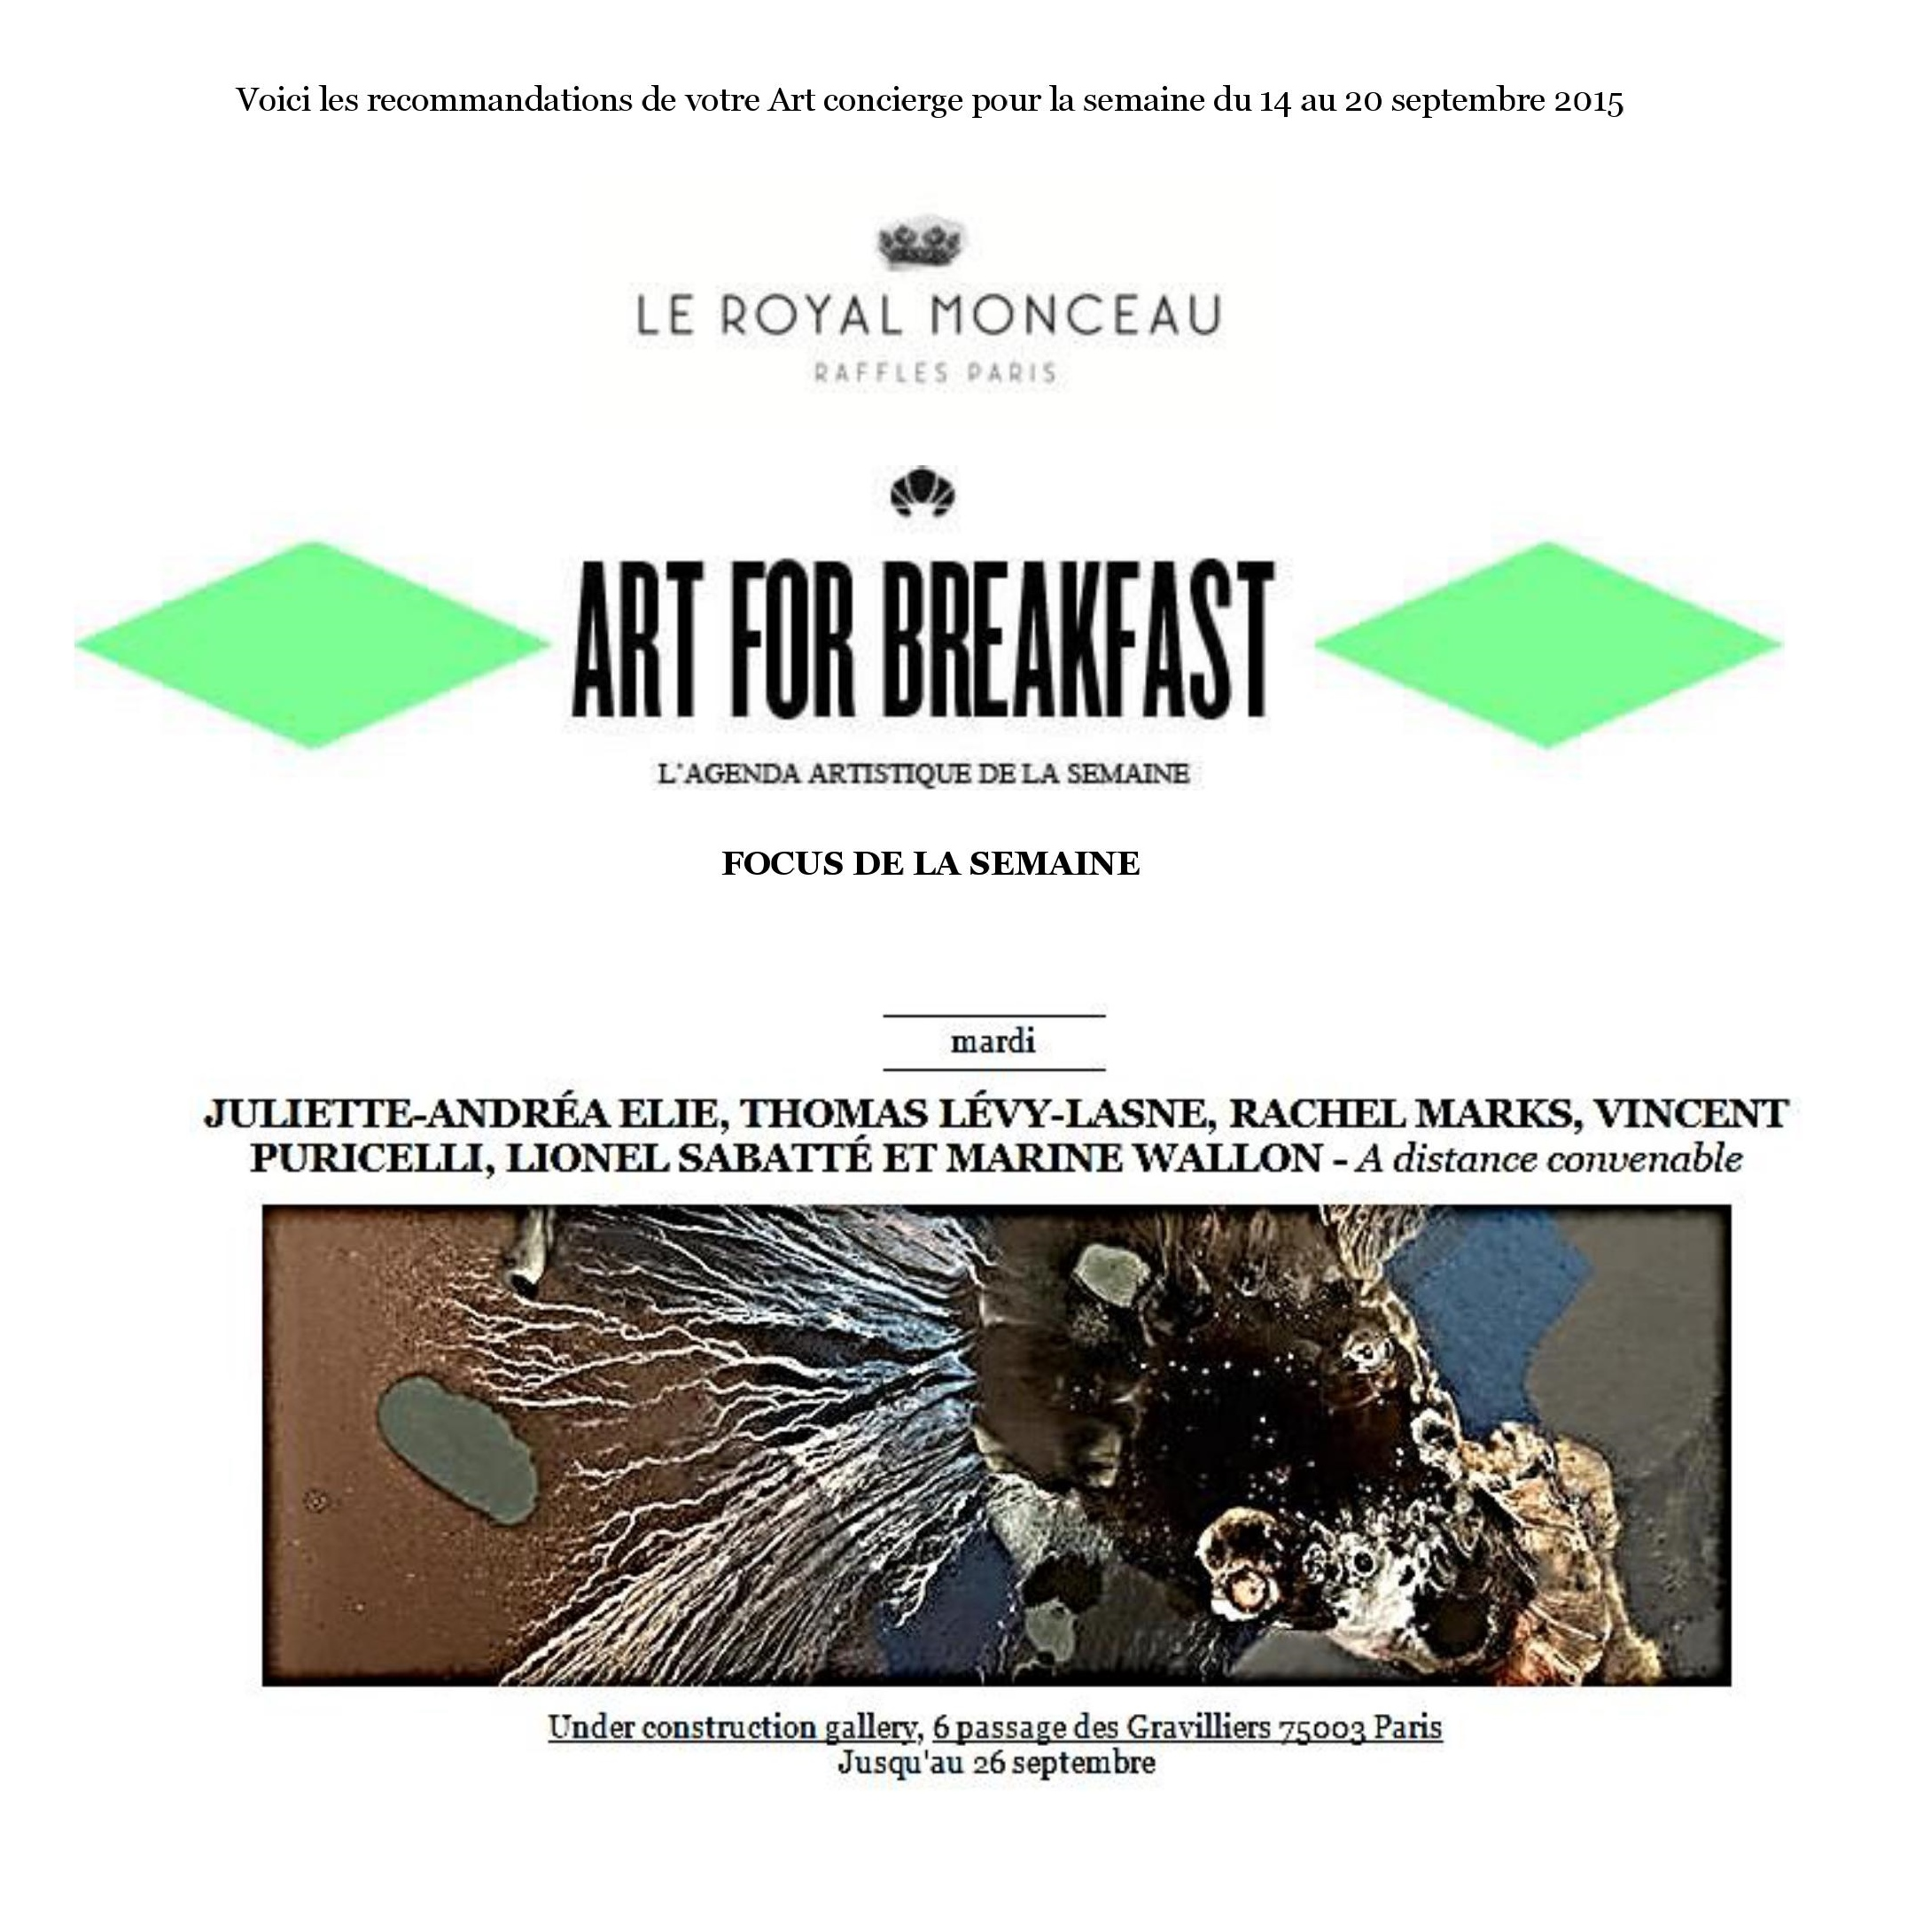 ART FOR BREAKFAST - 14 septembre